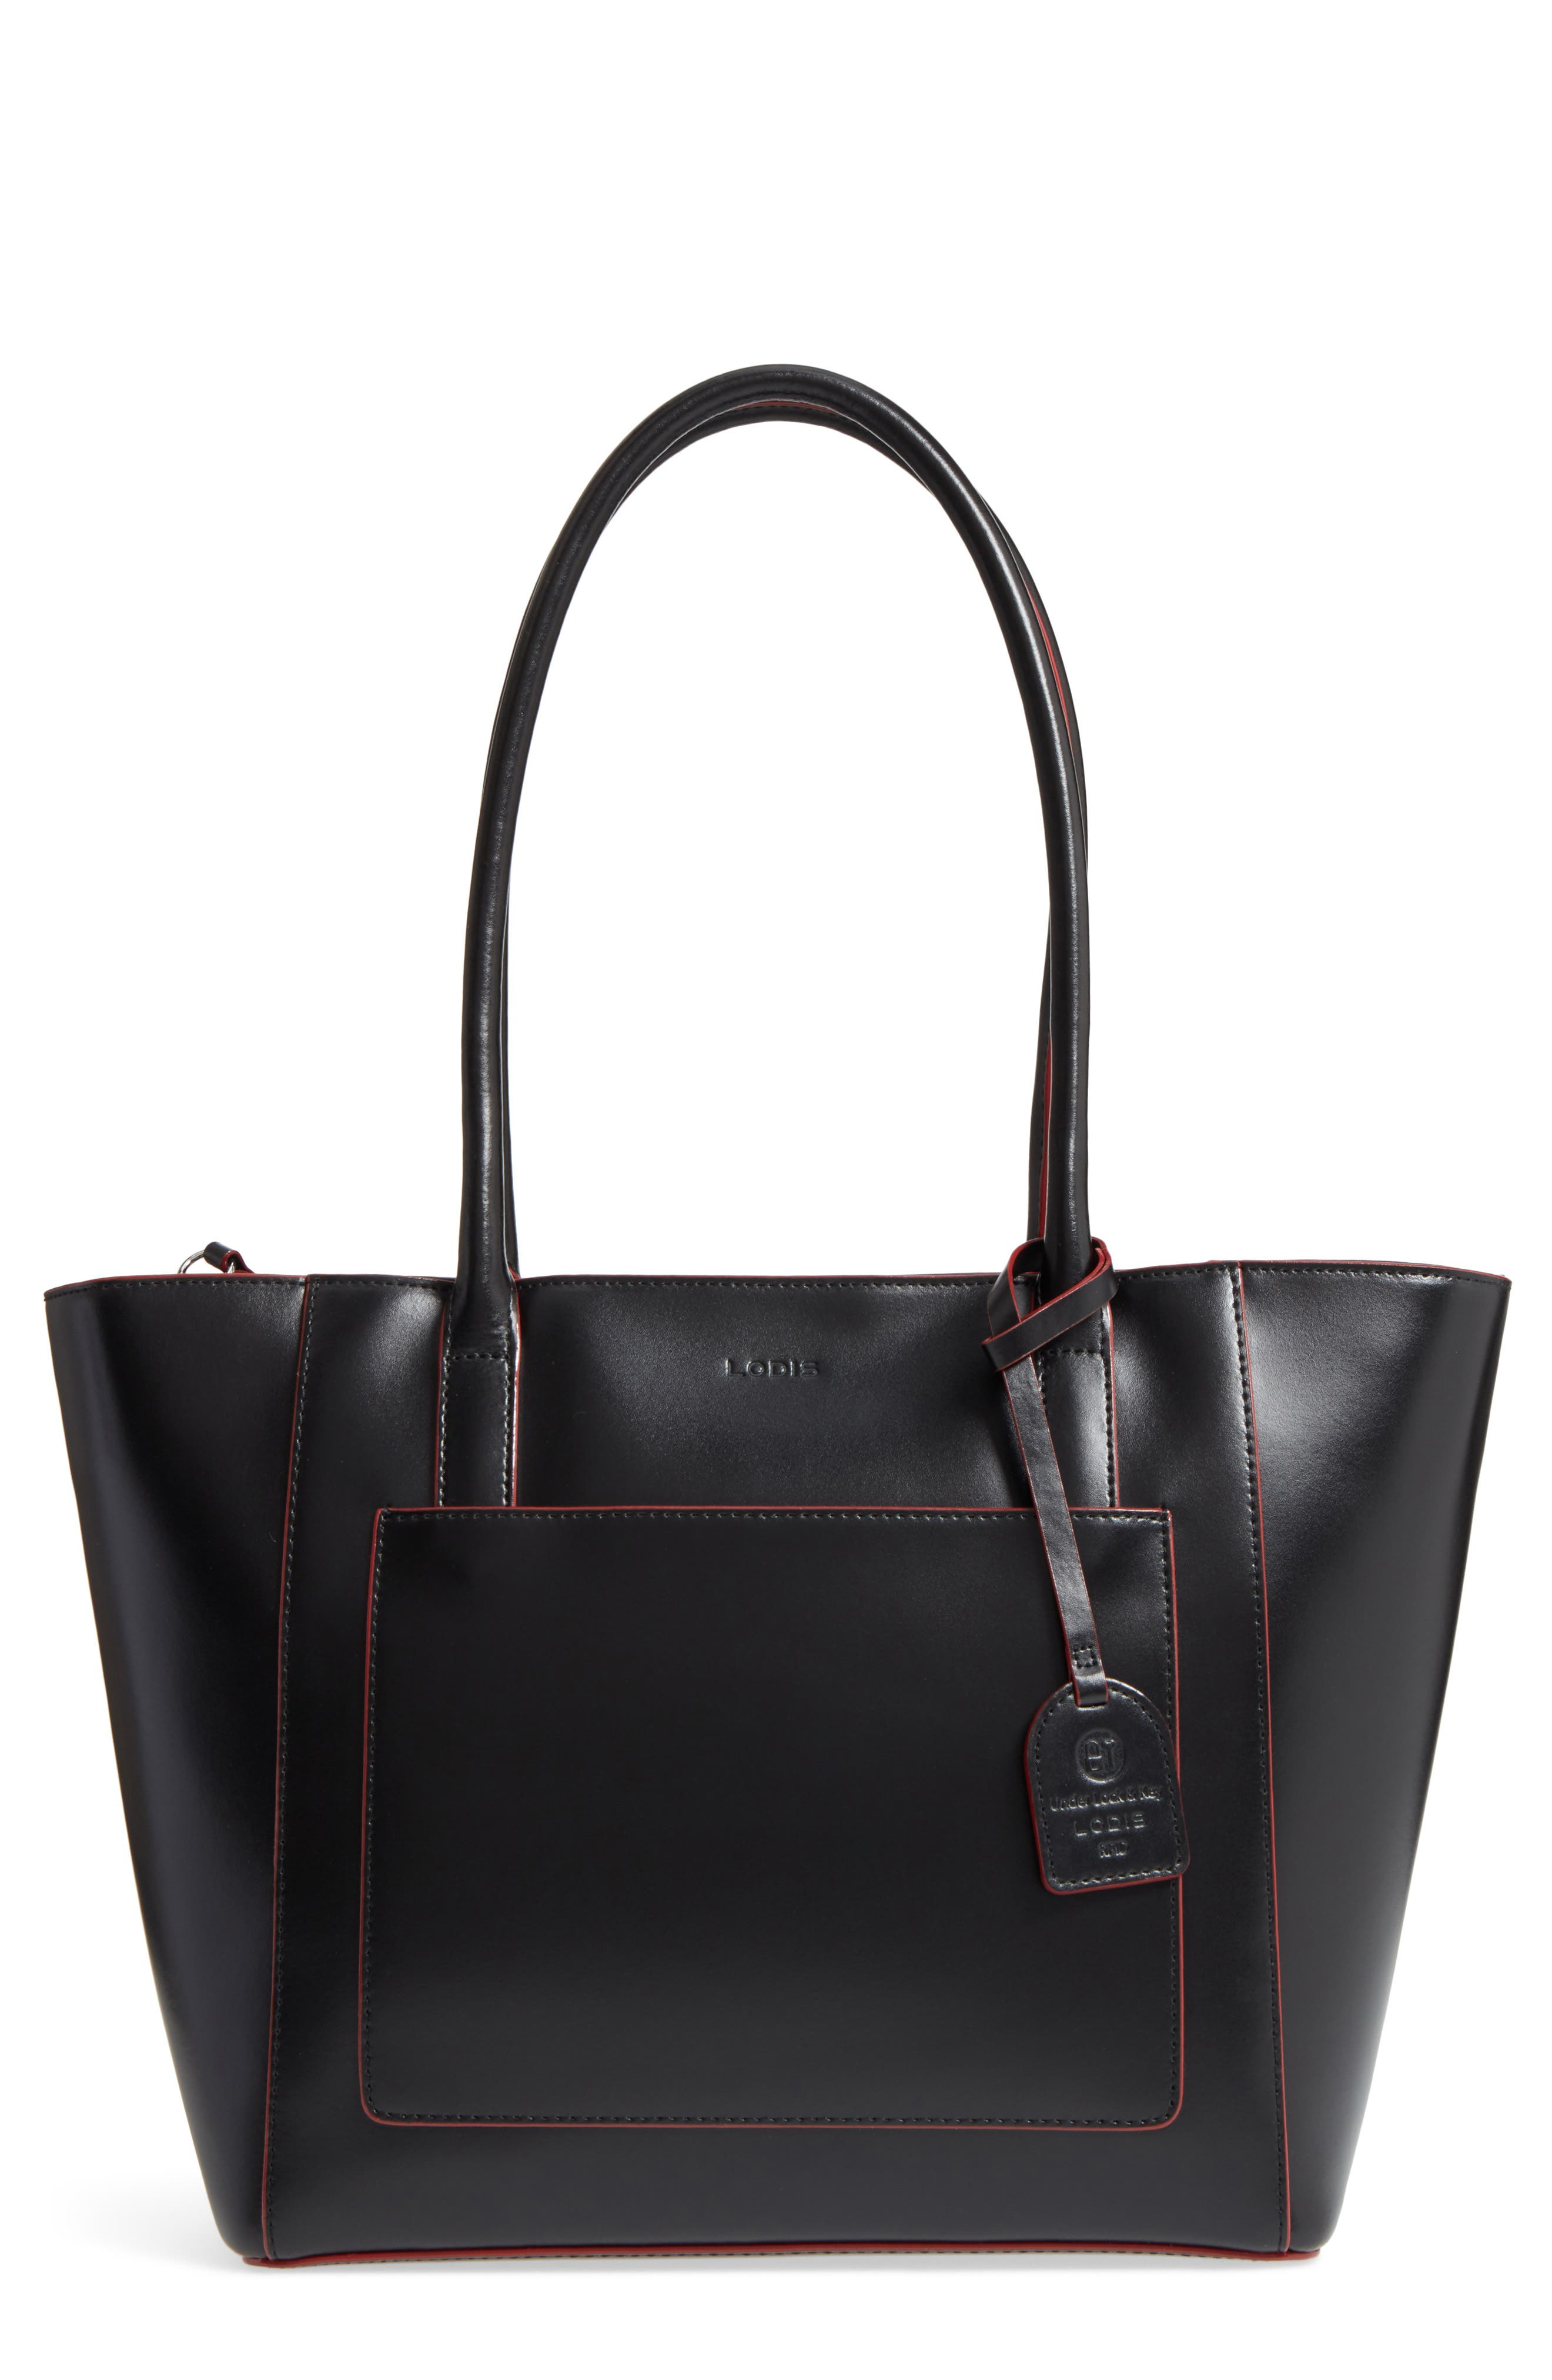 Main Image - LODIS Los Angeles Audrey Under Lock & Key - Medium Margaret RFID Leather Tote with Zip Pouch